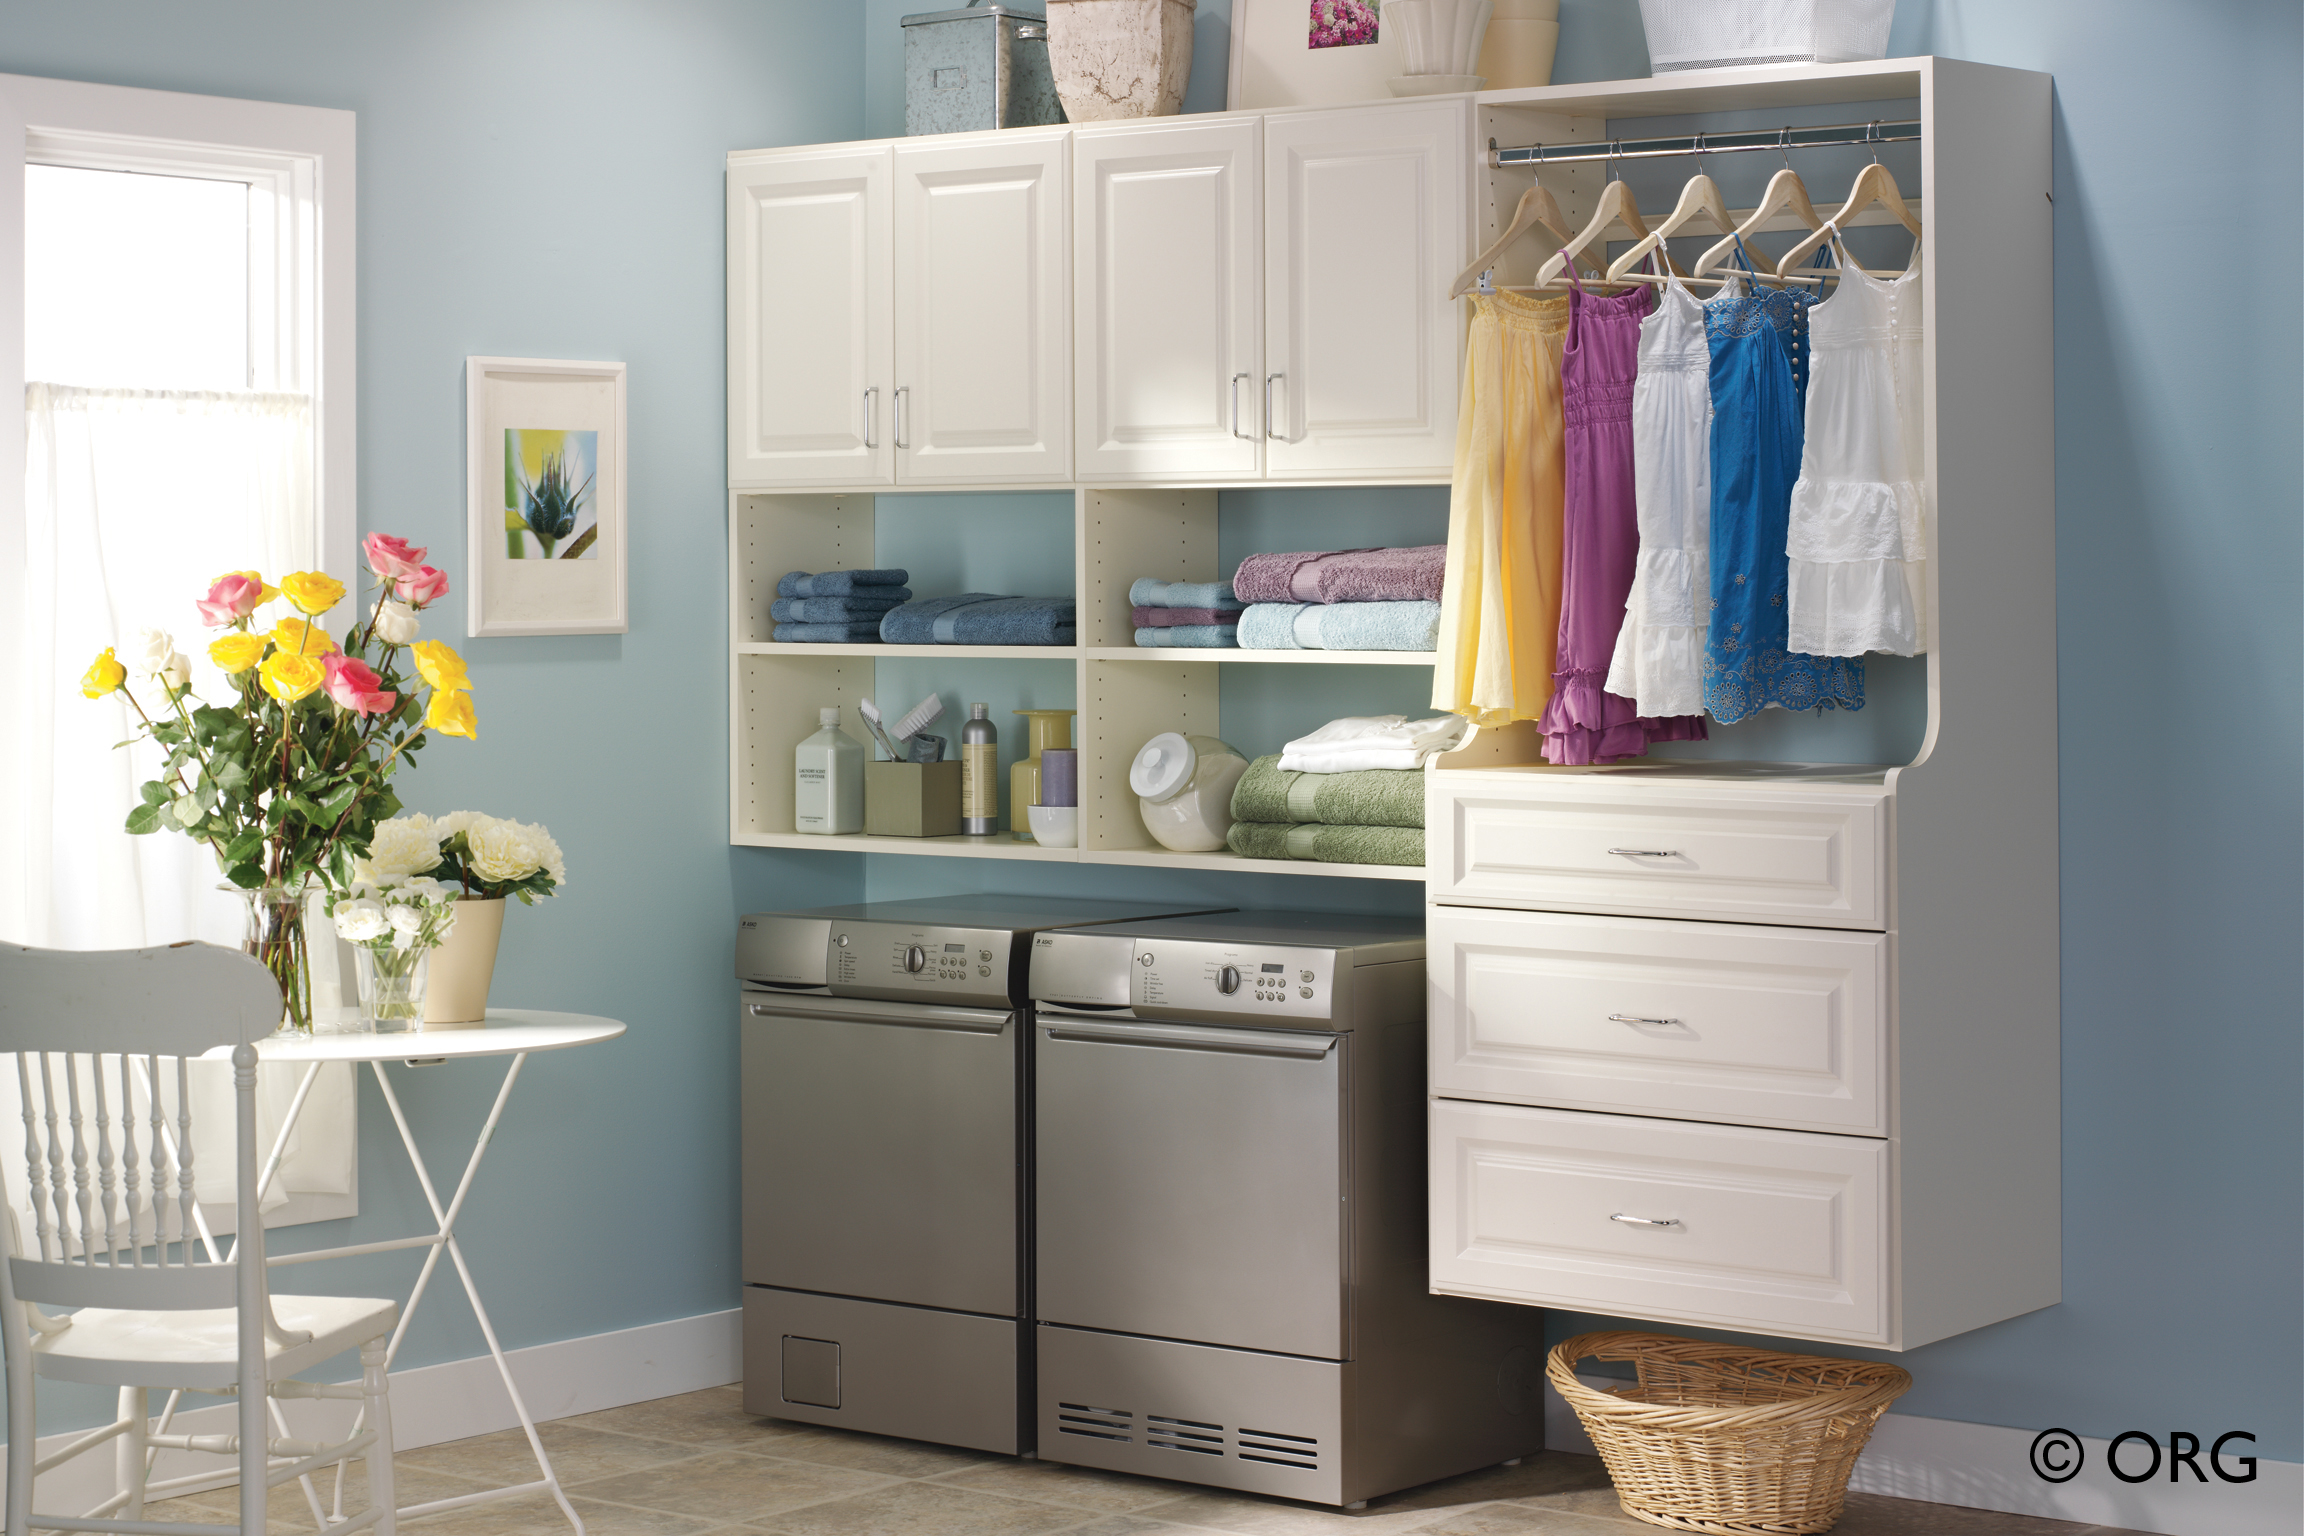 garage envy launches storage envy for in home storage solutions for a limited time use storage envy and save up to 500